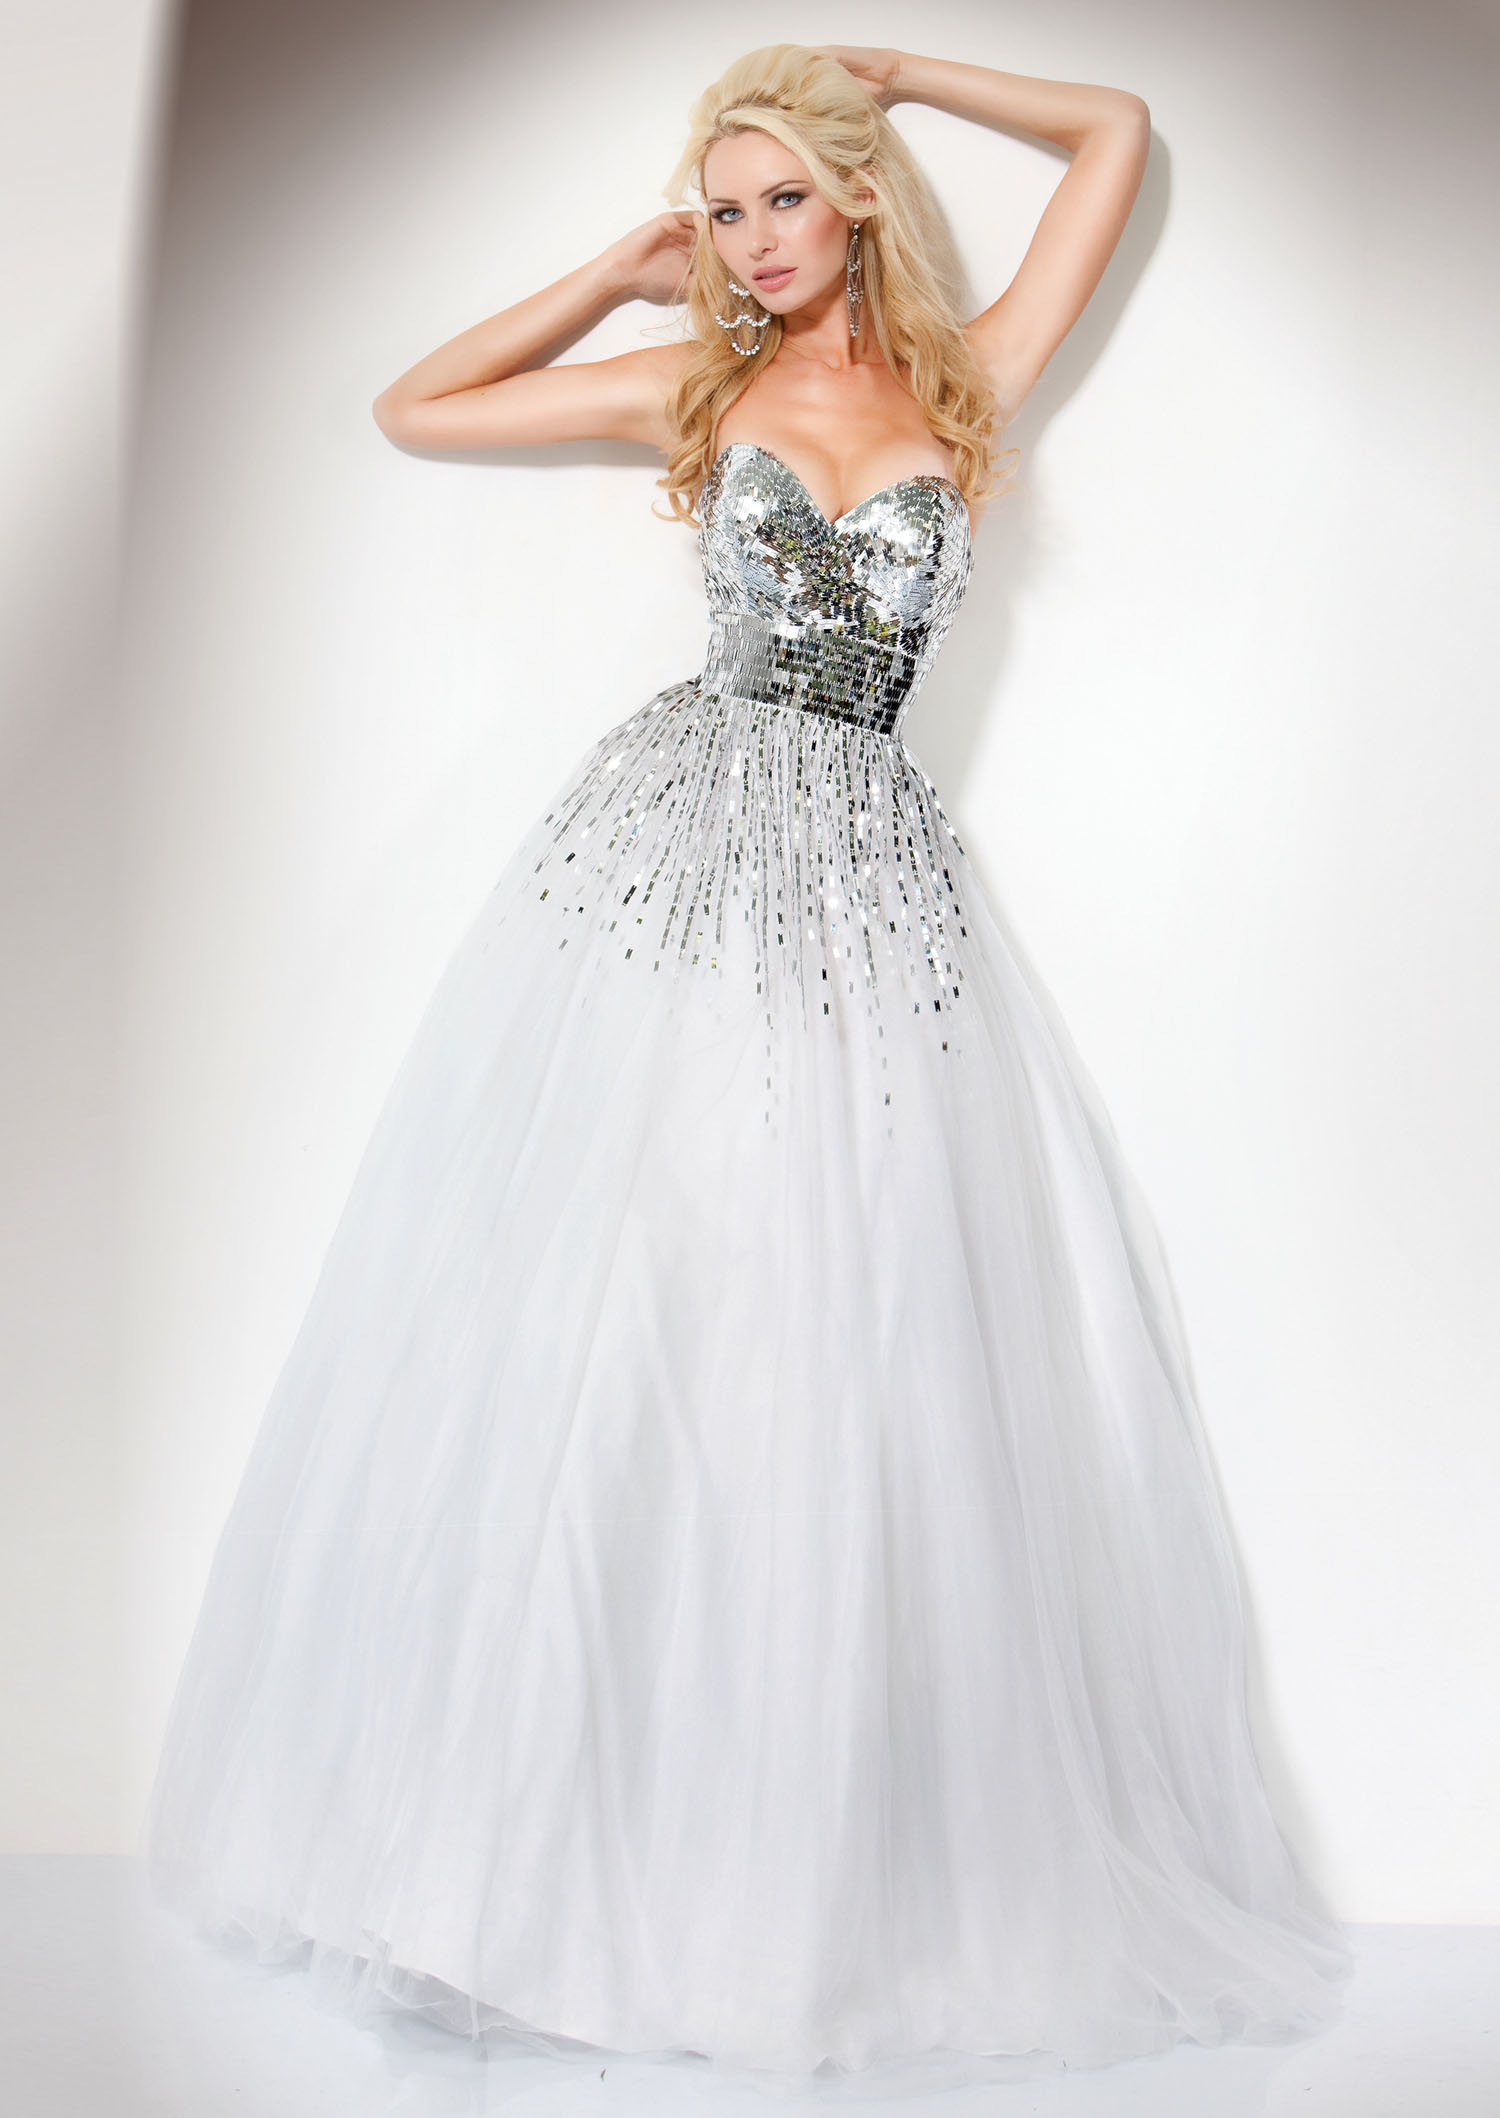 Sequin white ball gown